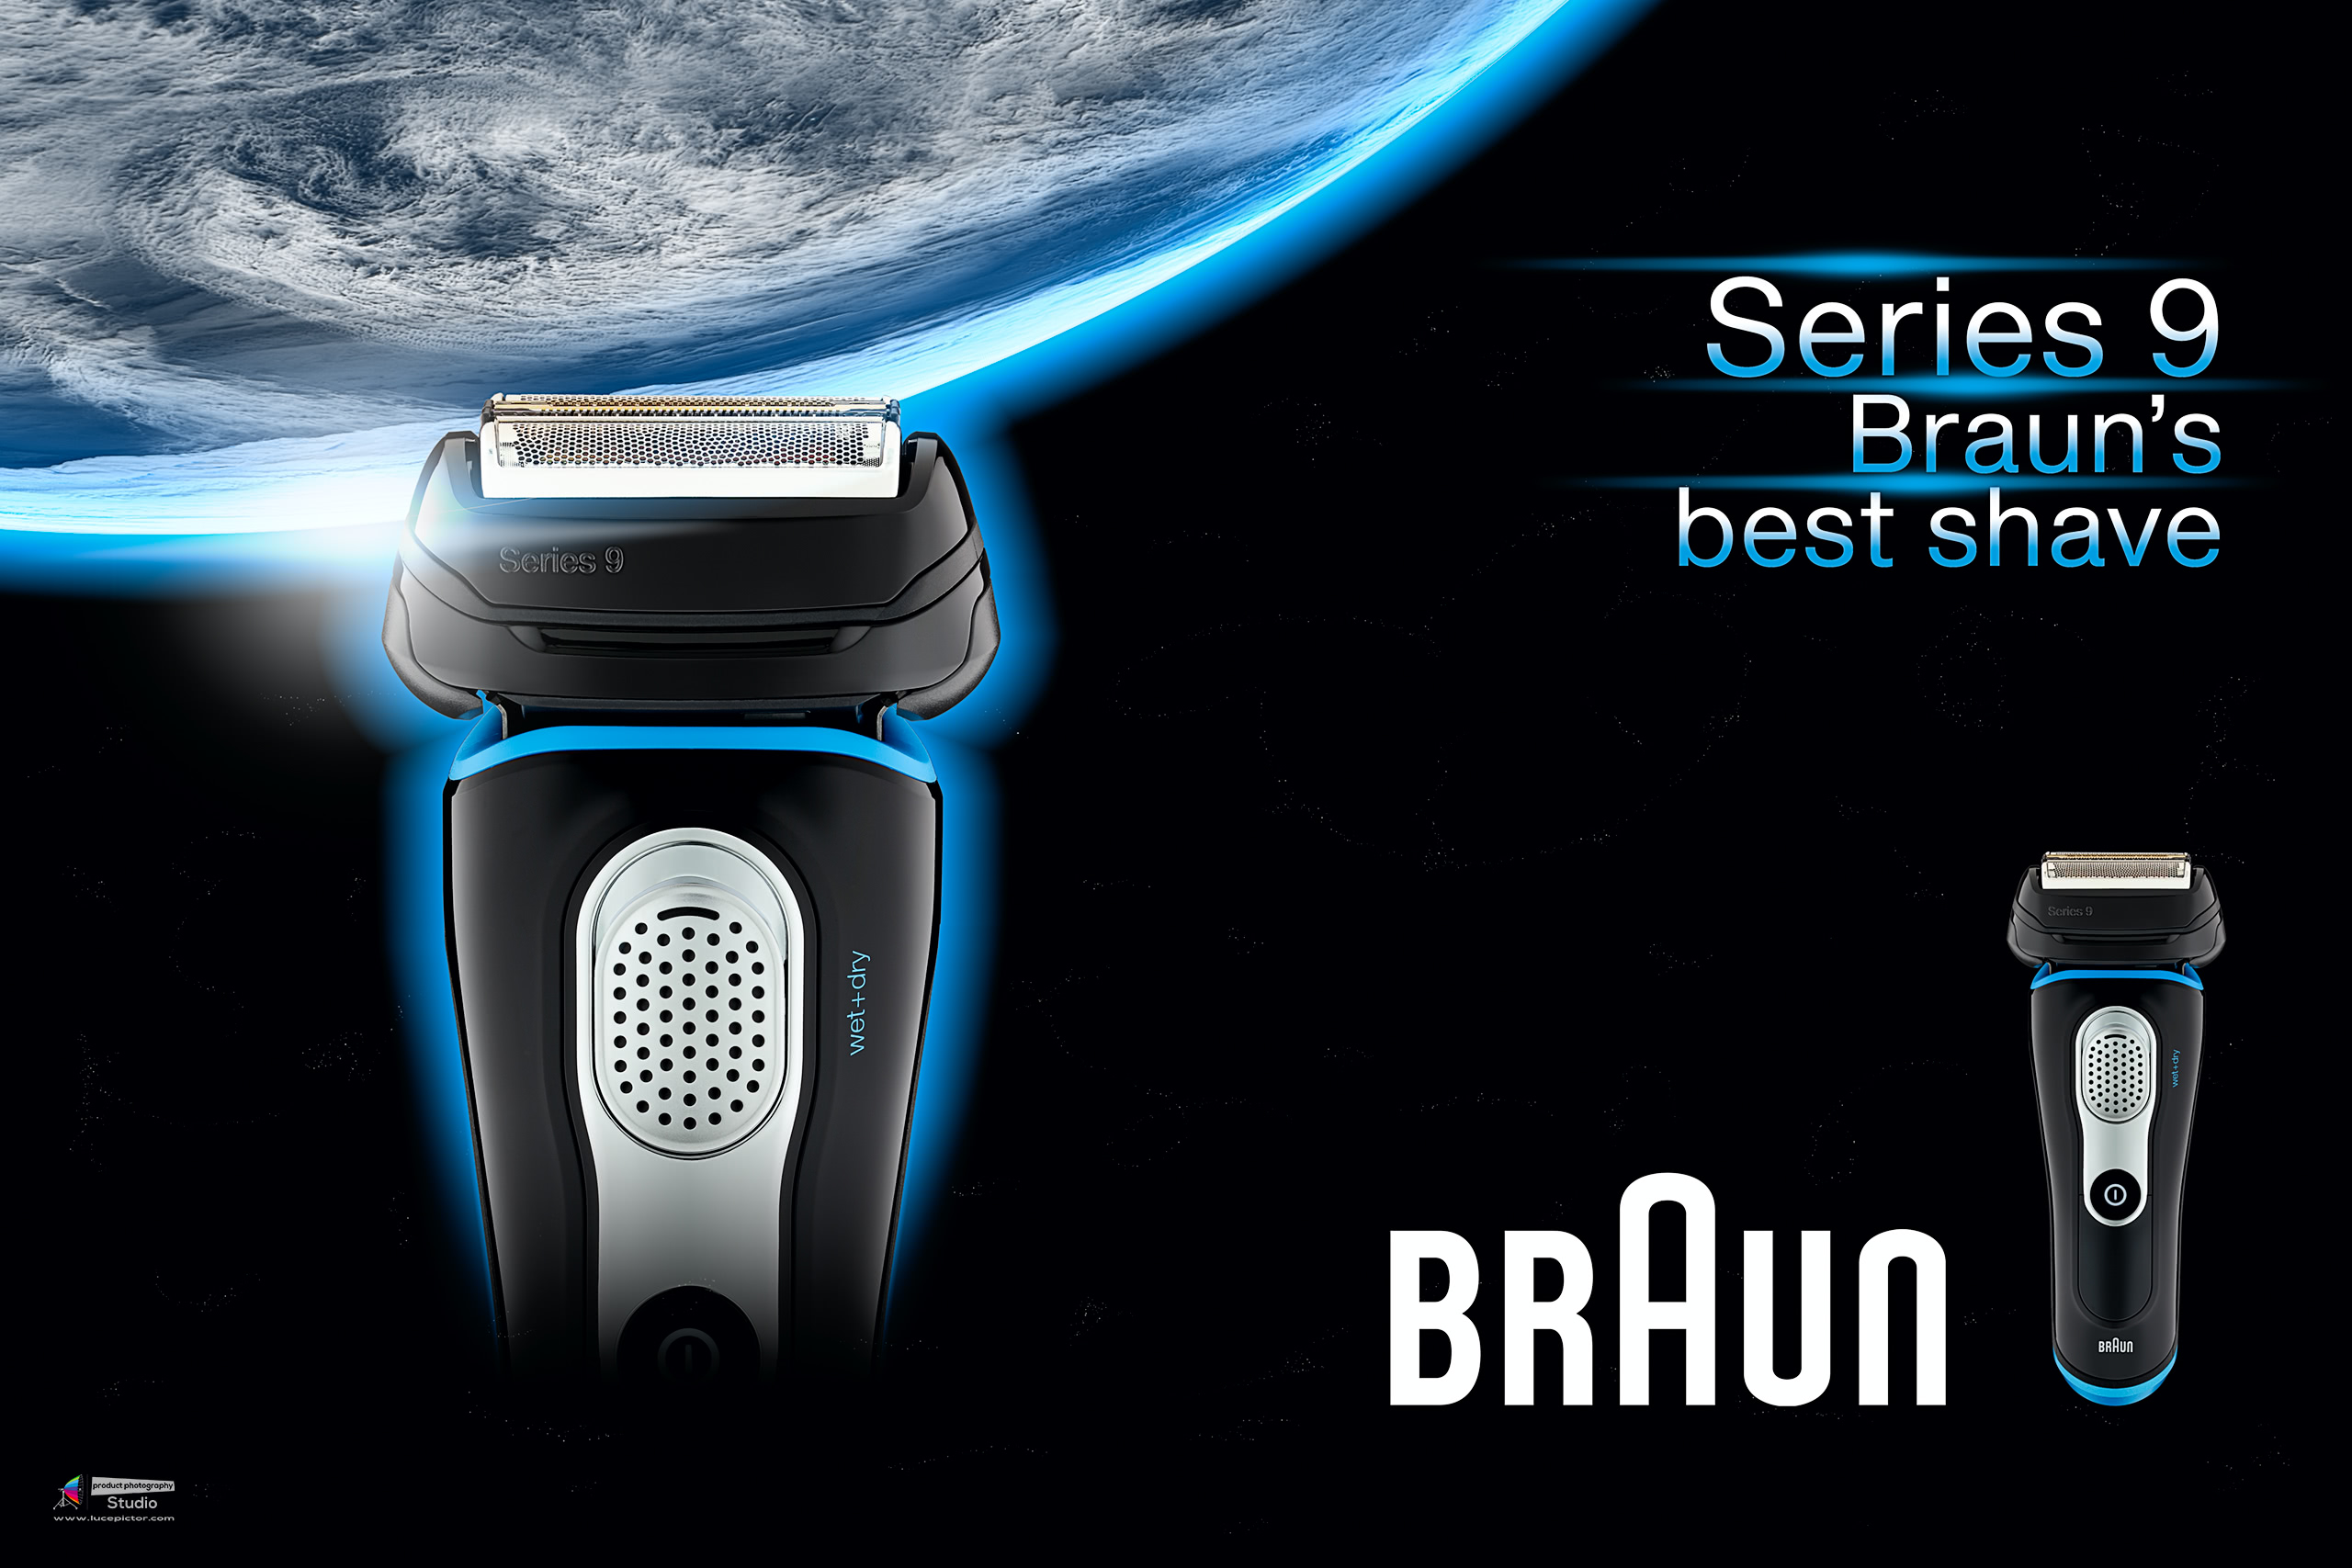 braun shaver advertising photography